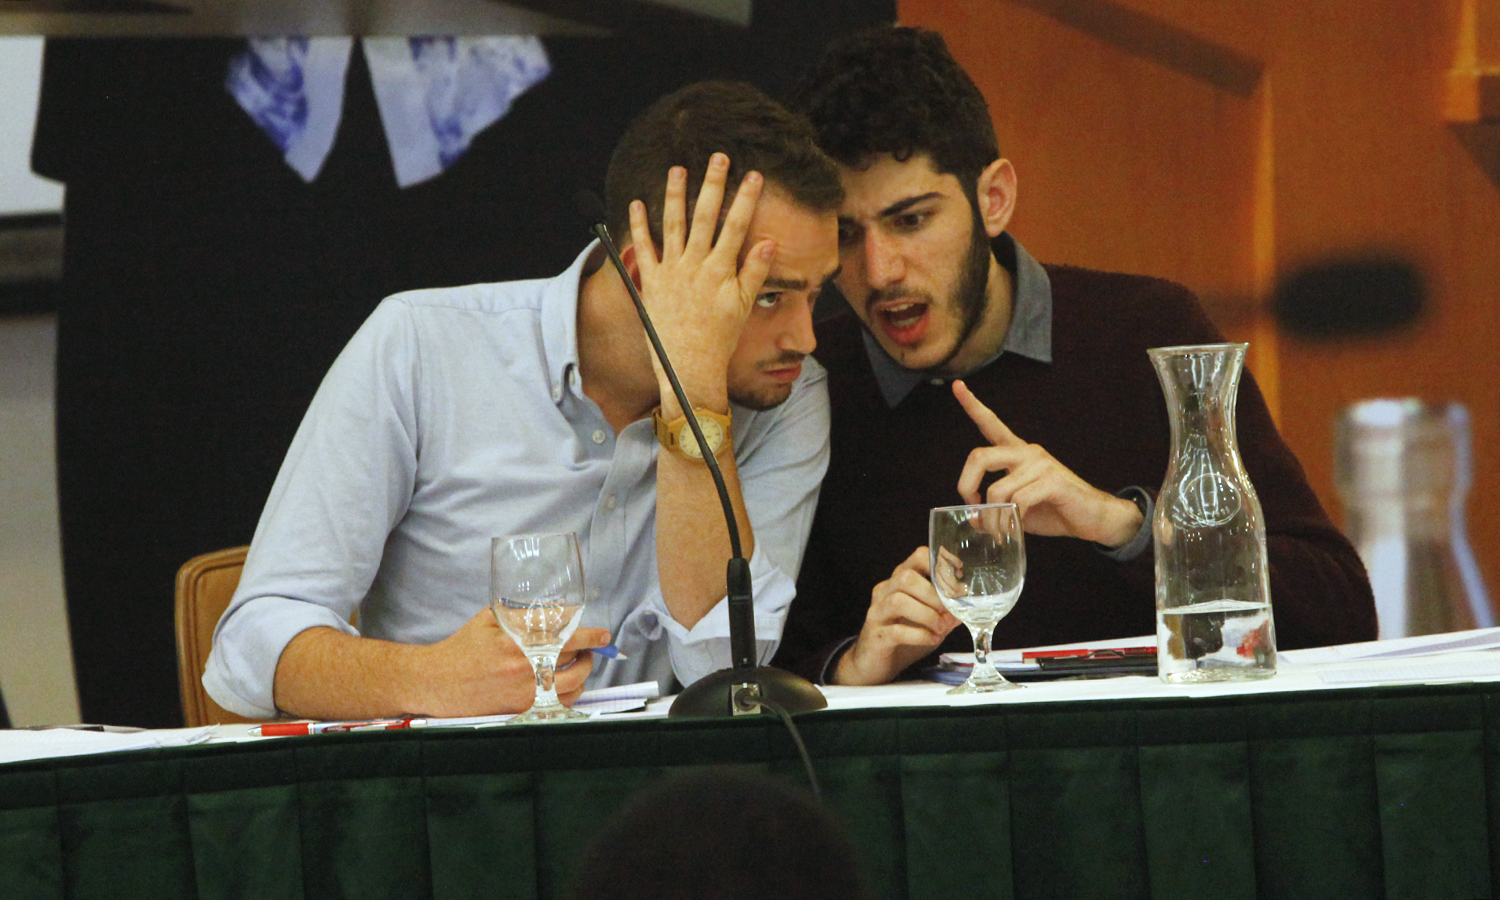 Representing Tel Aviv Universtiy, Noam Dahan (left) and Tom Manor discuss strategy during the final round of the HWS Round Robin in the Vandervort Room.